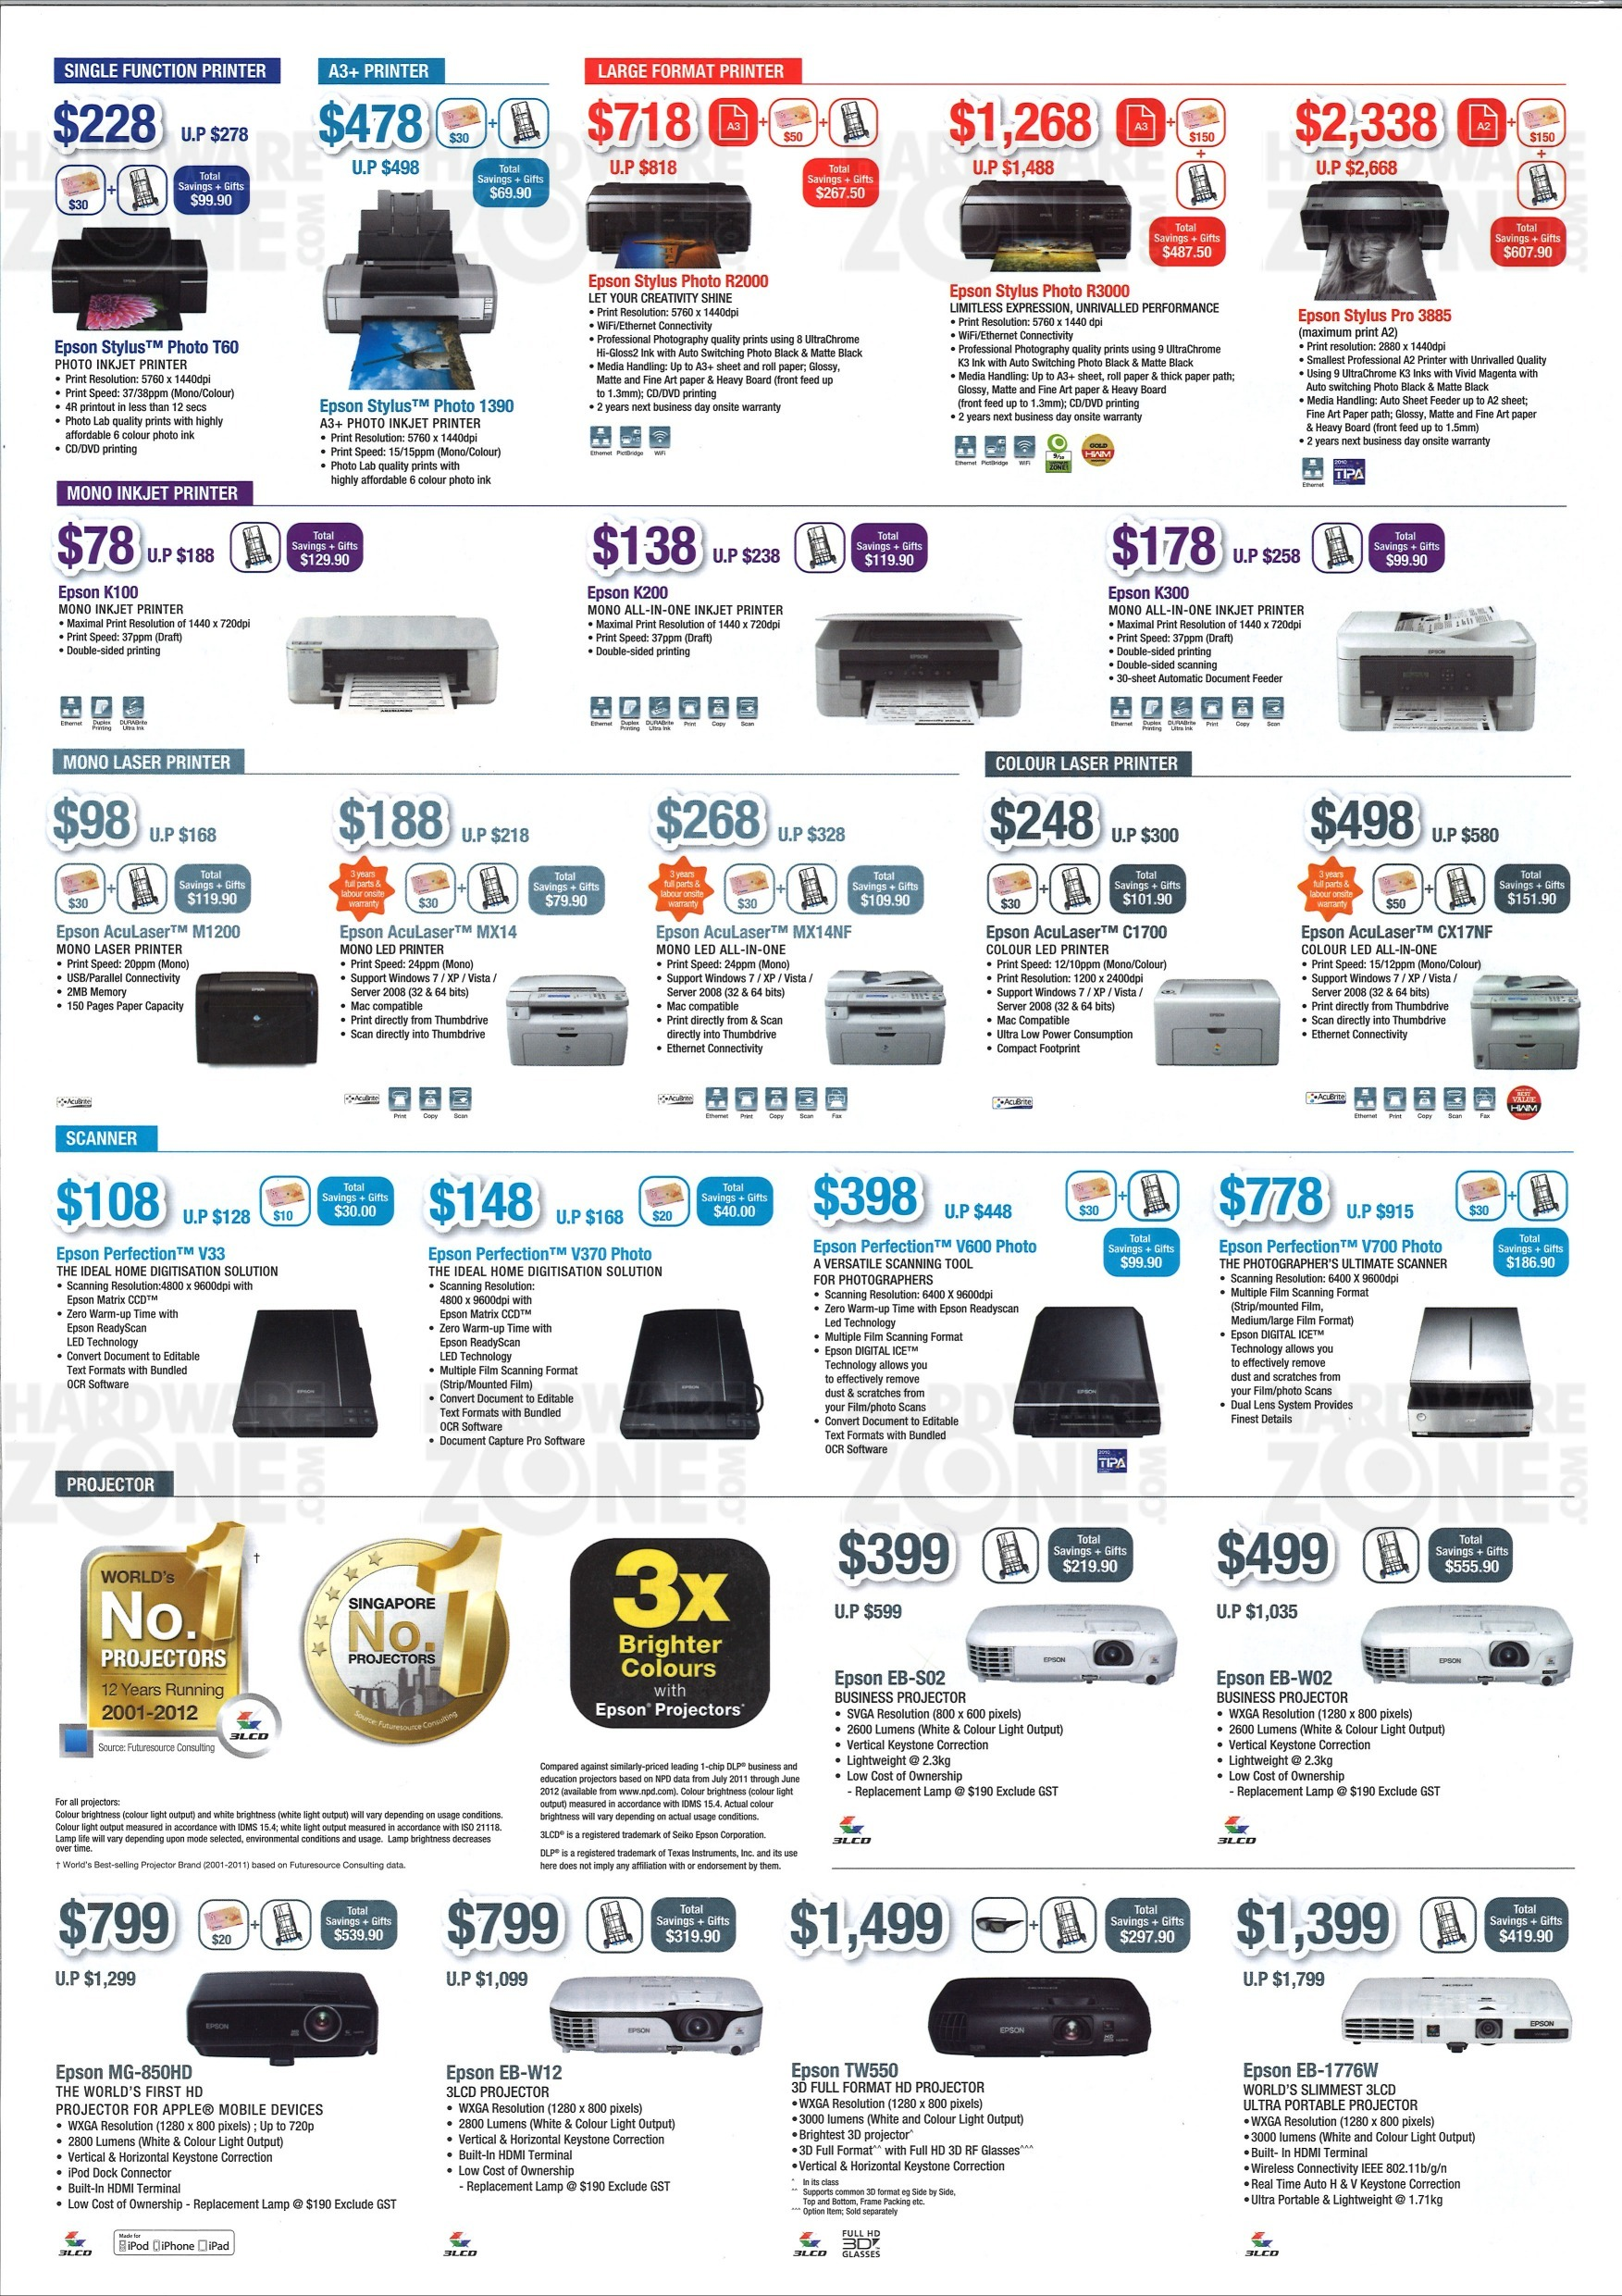 Epson - page 2